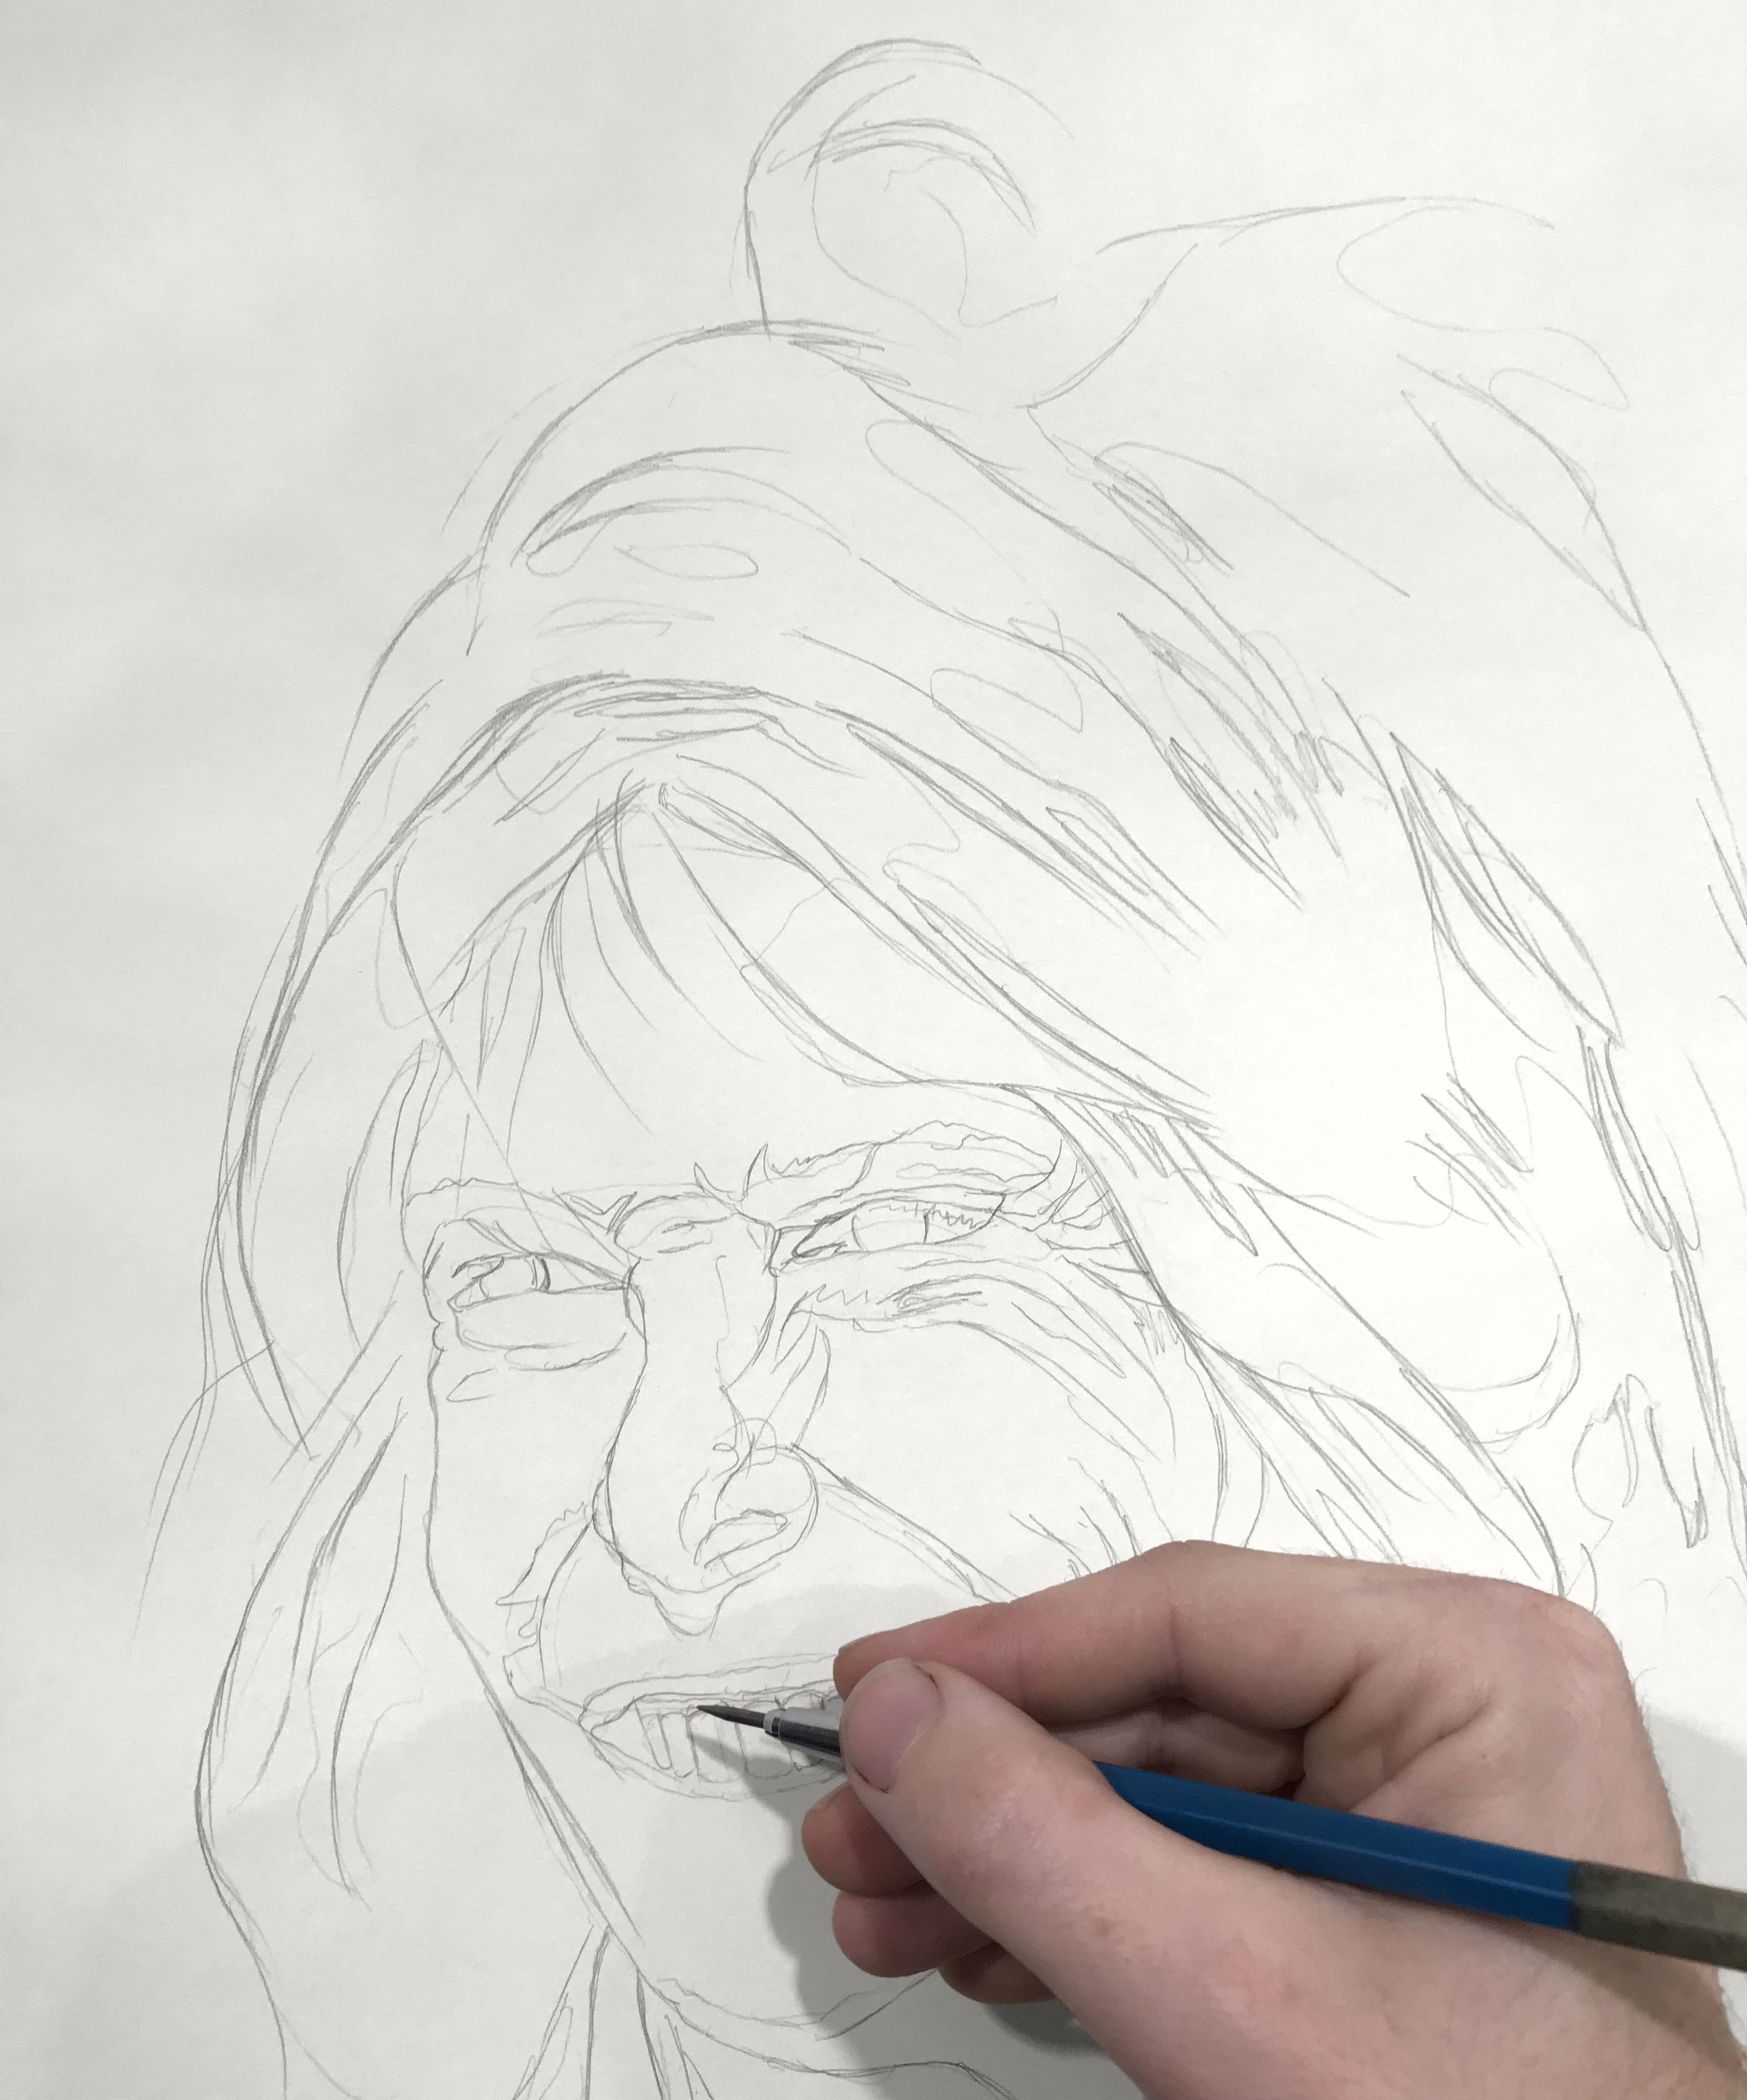 Drawing Portraits - Block-In